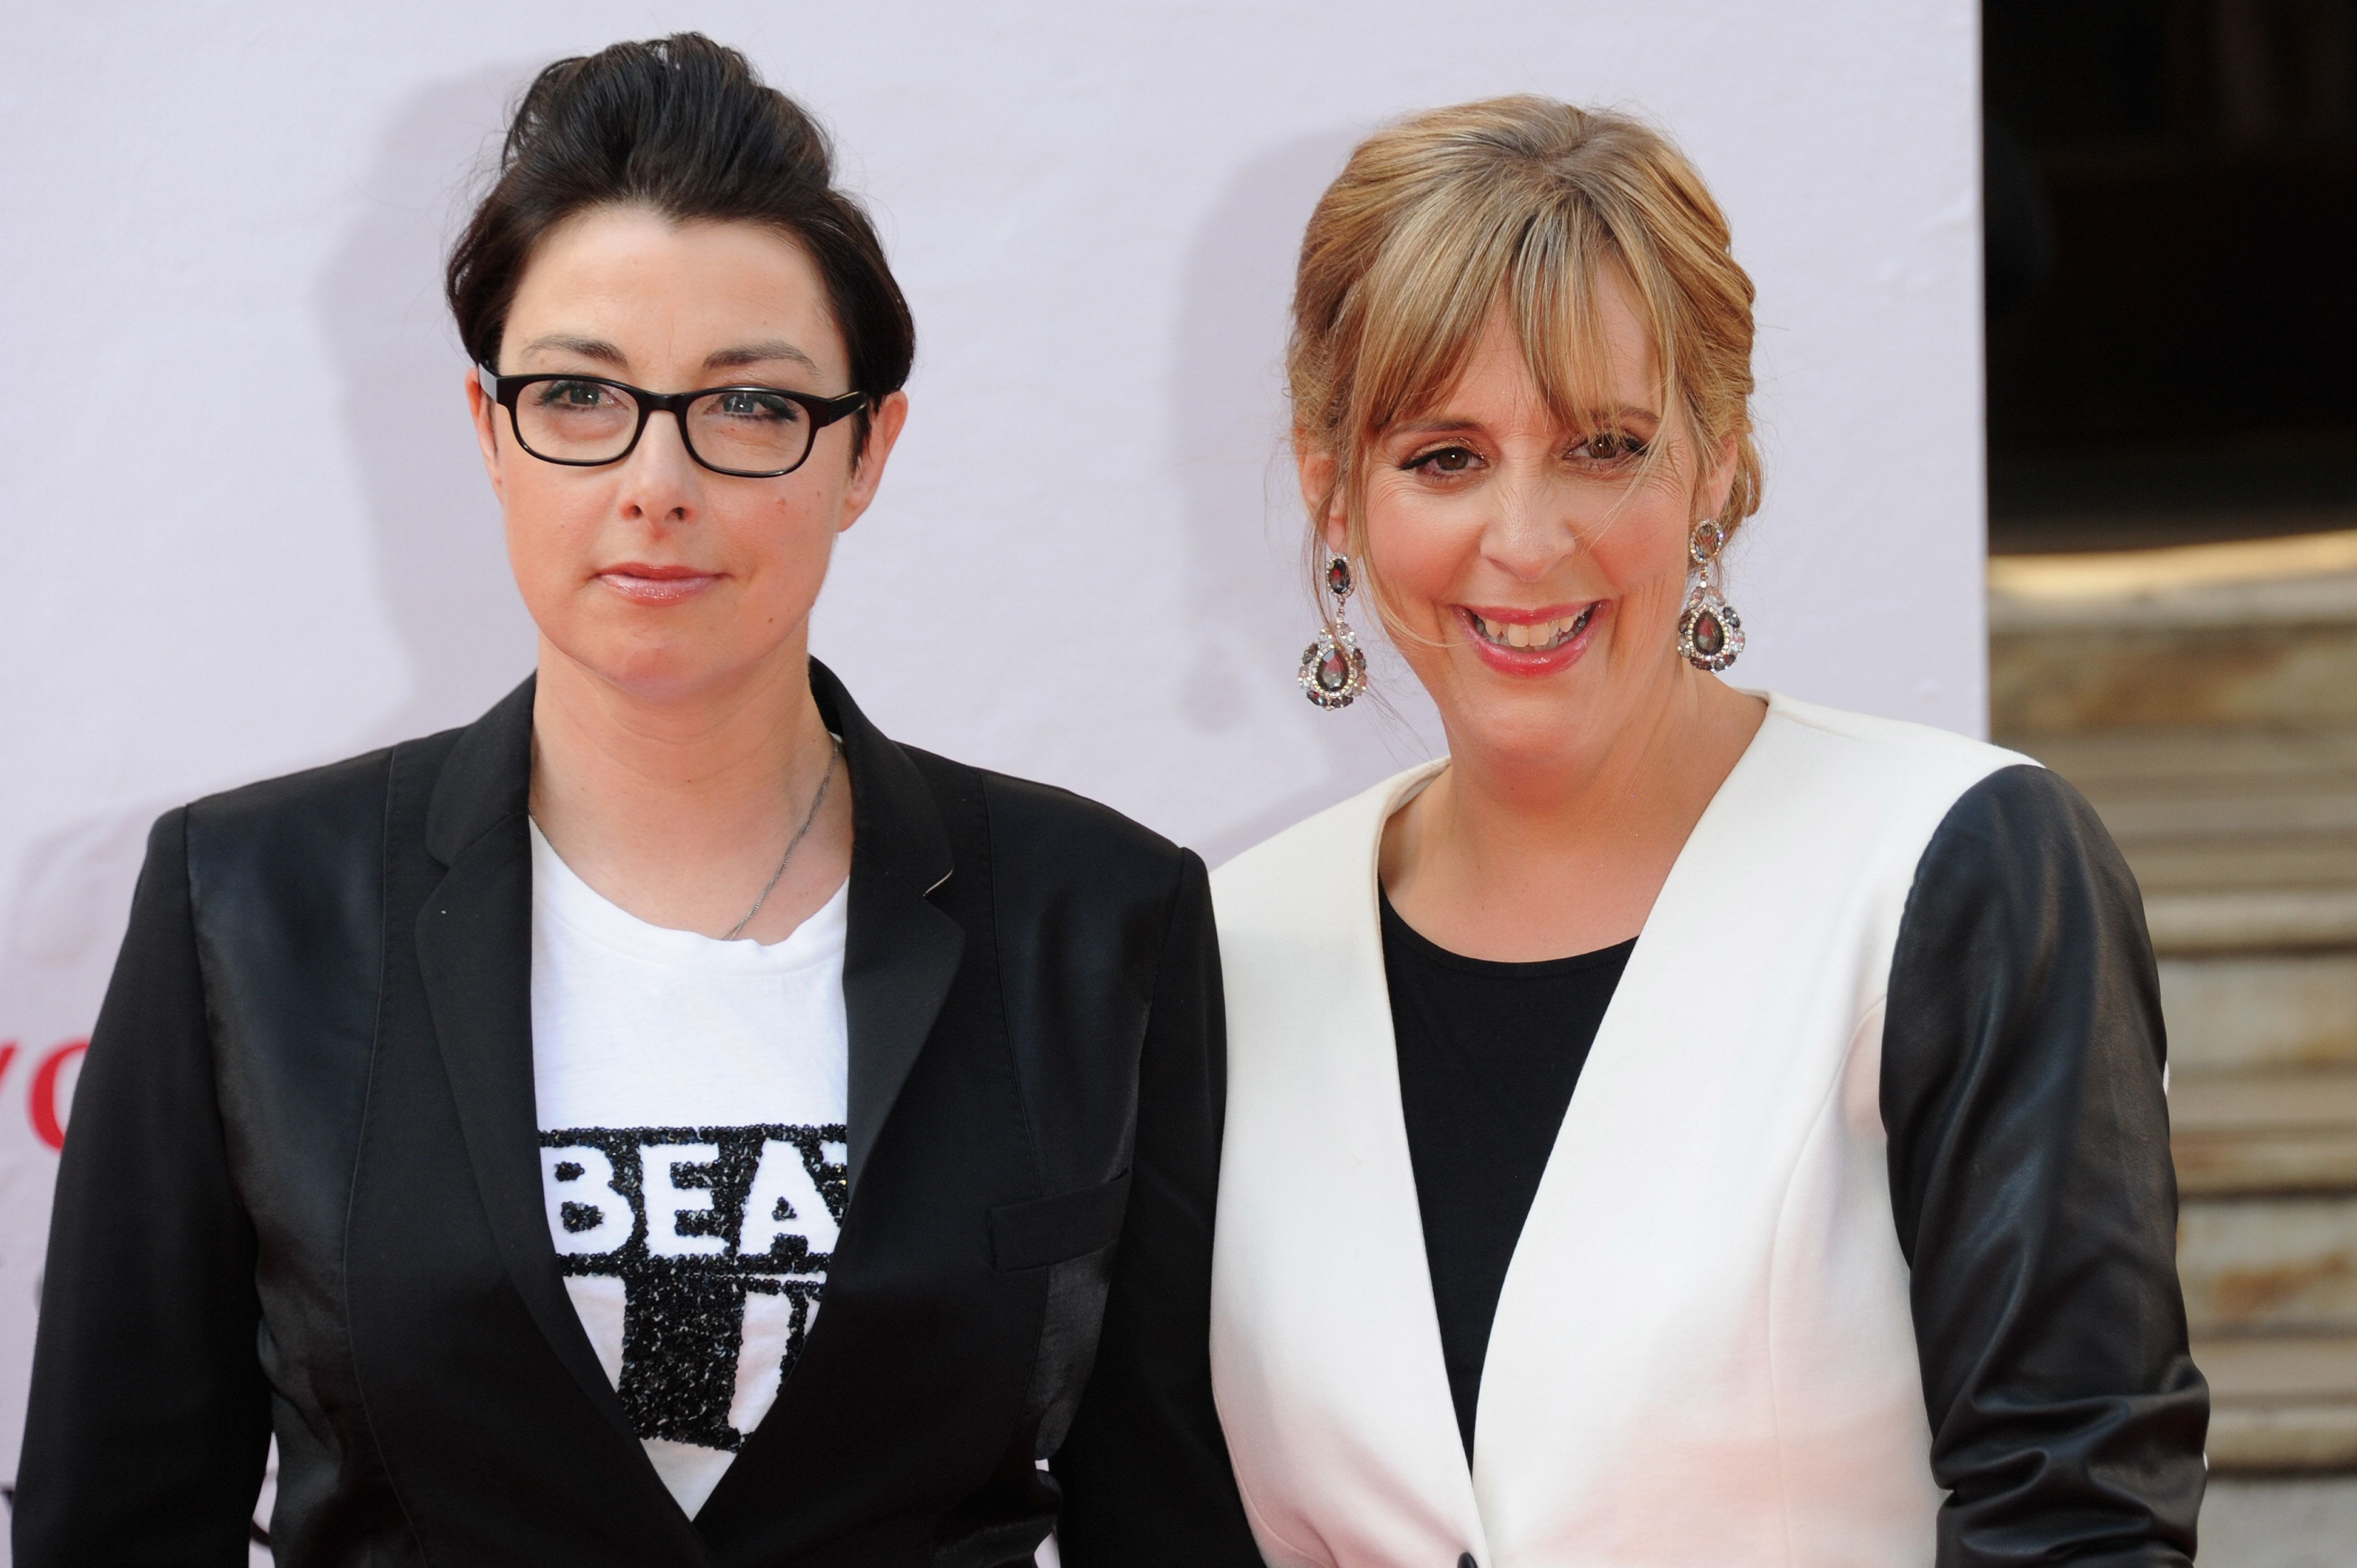 We're Going To Be Seeing A Lot More Of Mel And Sue On Our